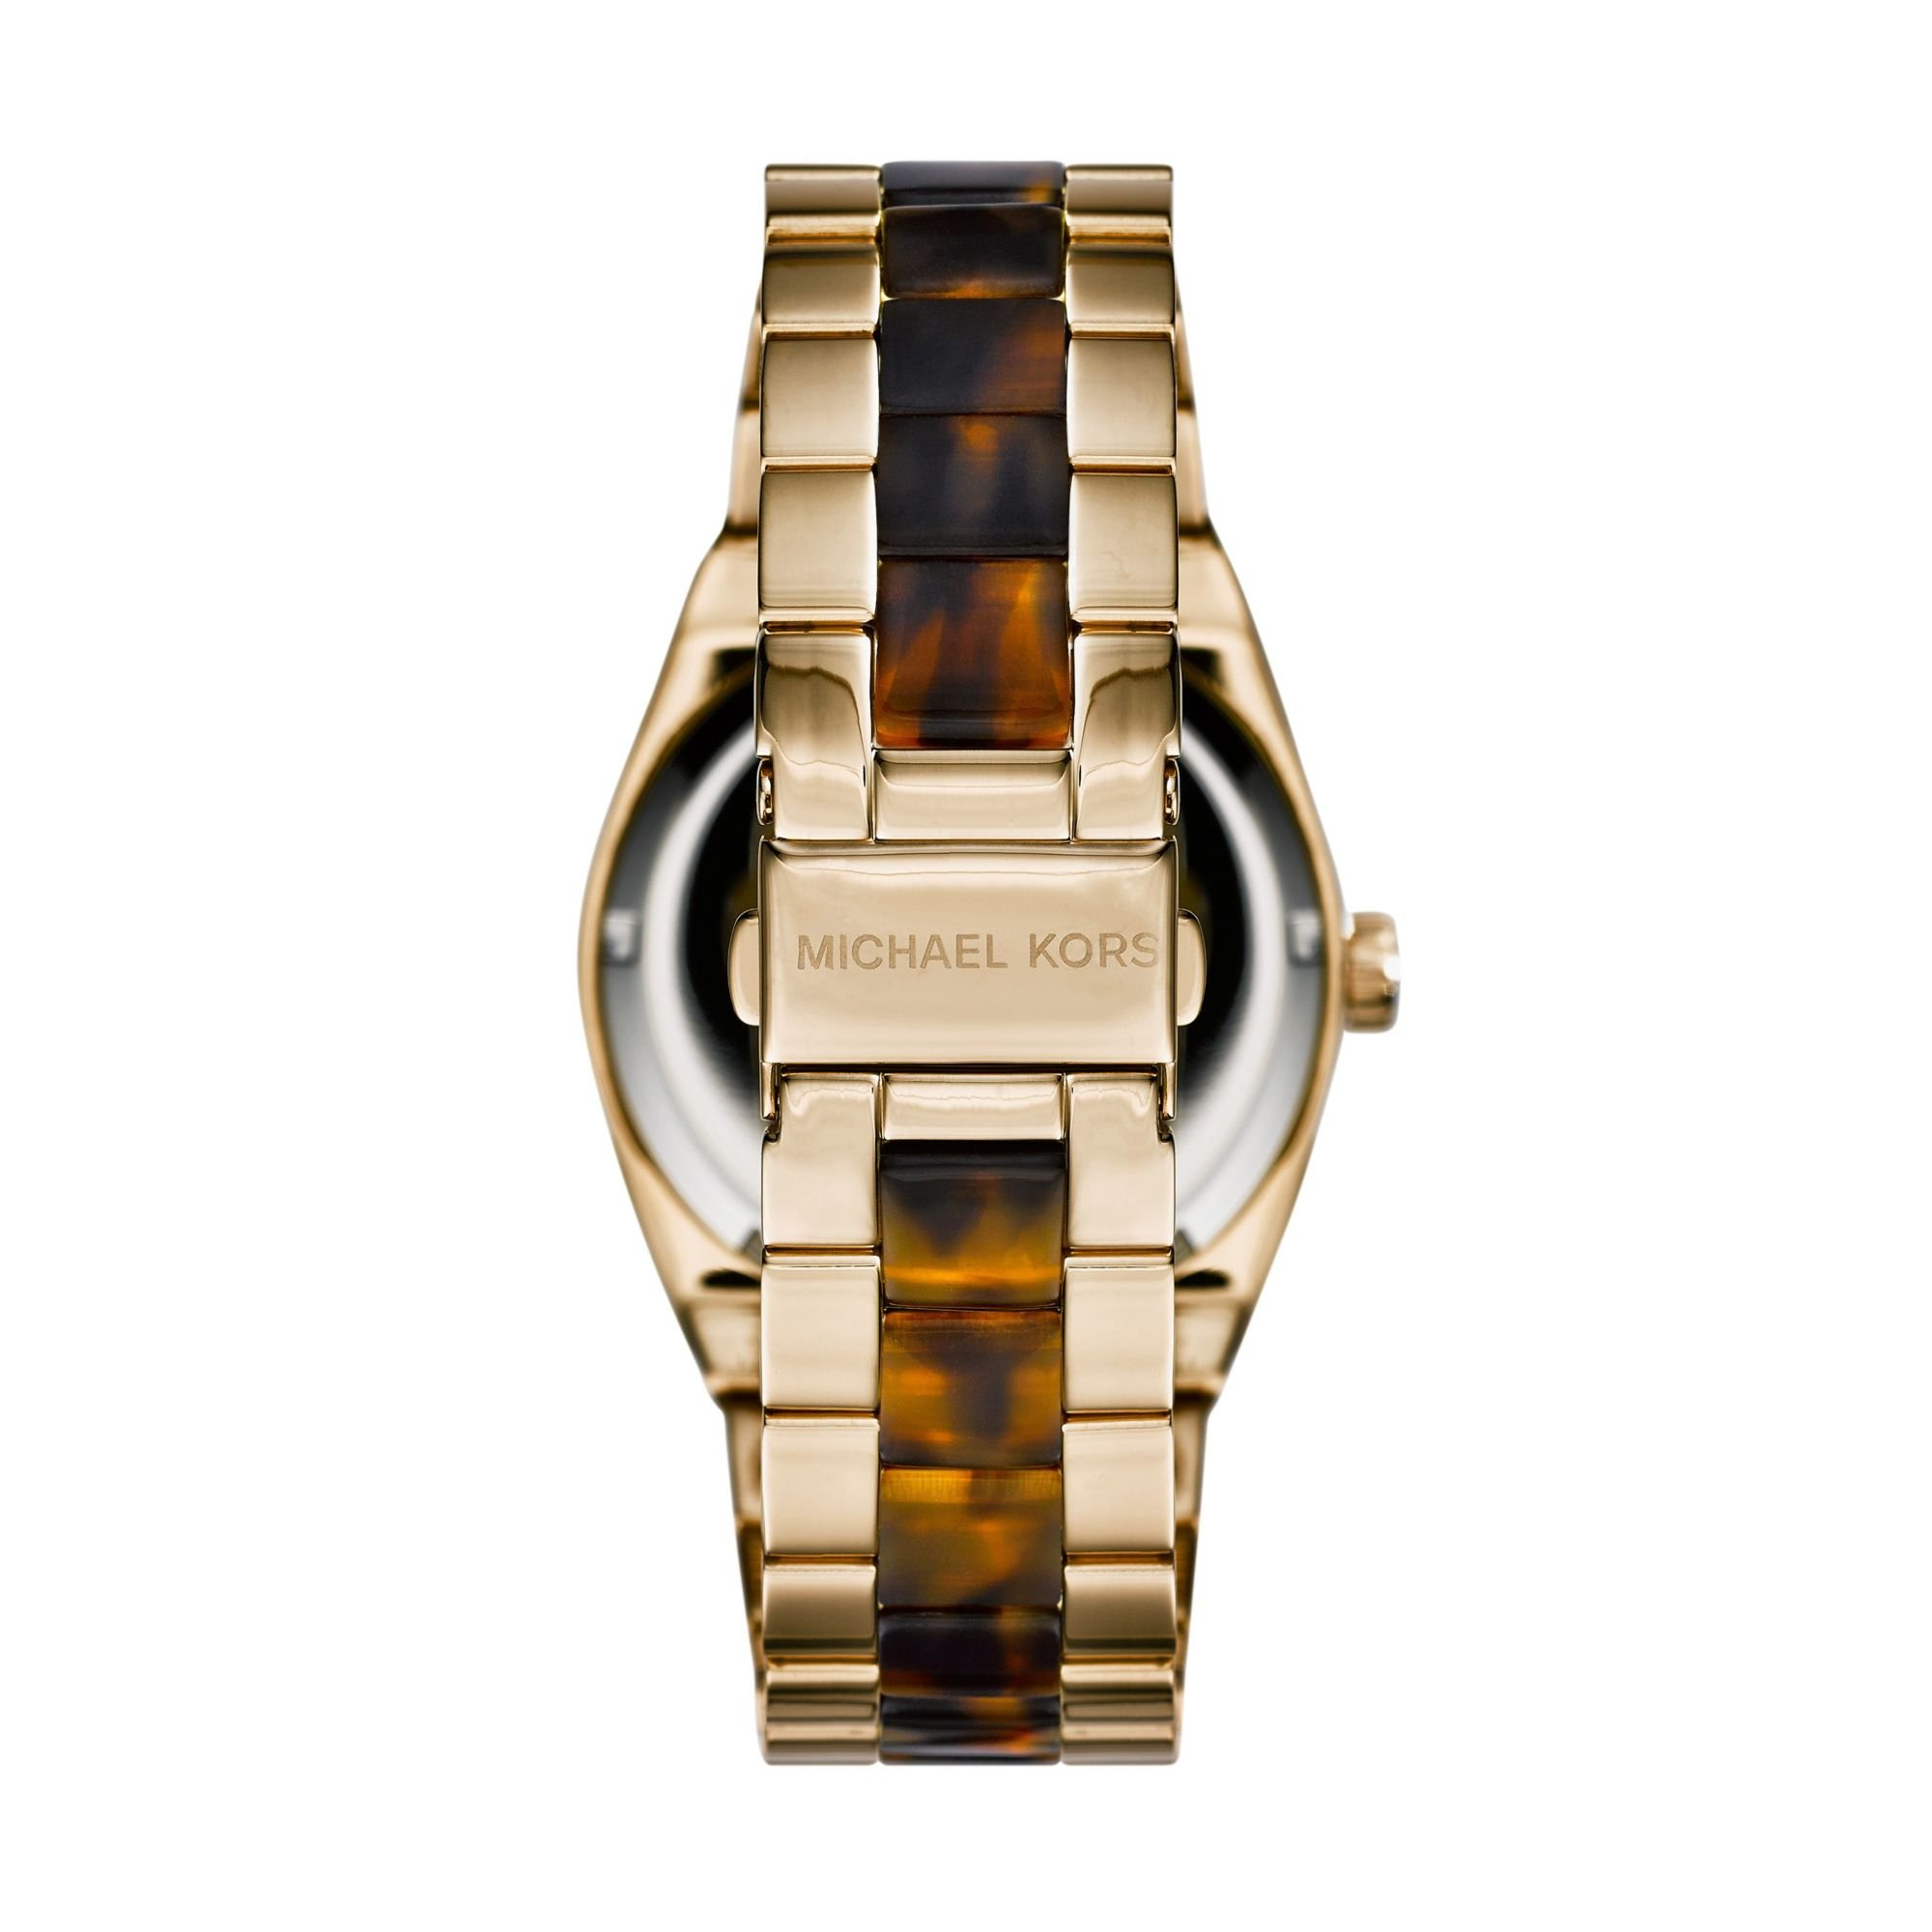 d4147f45e4eb Lyst - Michael Kors Channing Gold-tone Tortoise Acetate Watch in ...